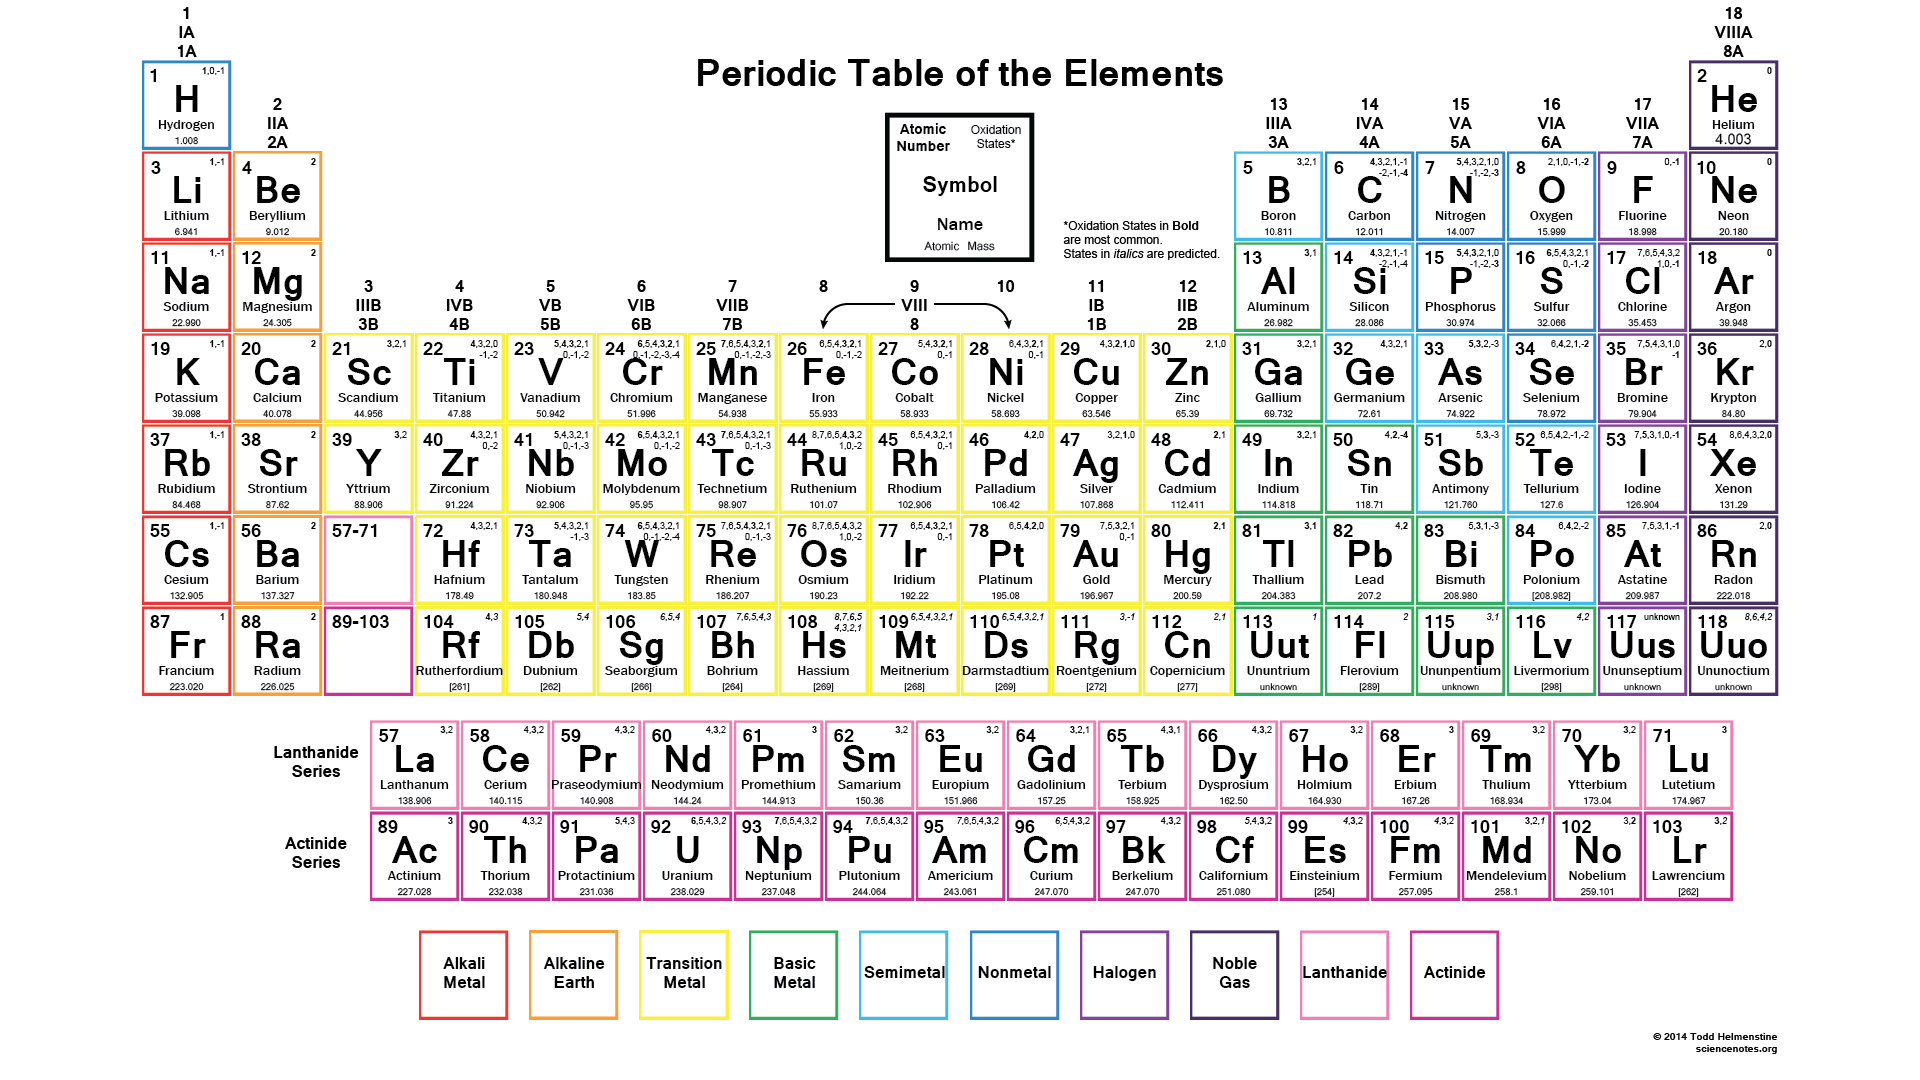 Downloadable periodic table oxidation states click for full size gamestrikefo Gallery